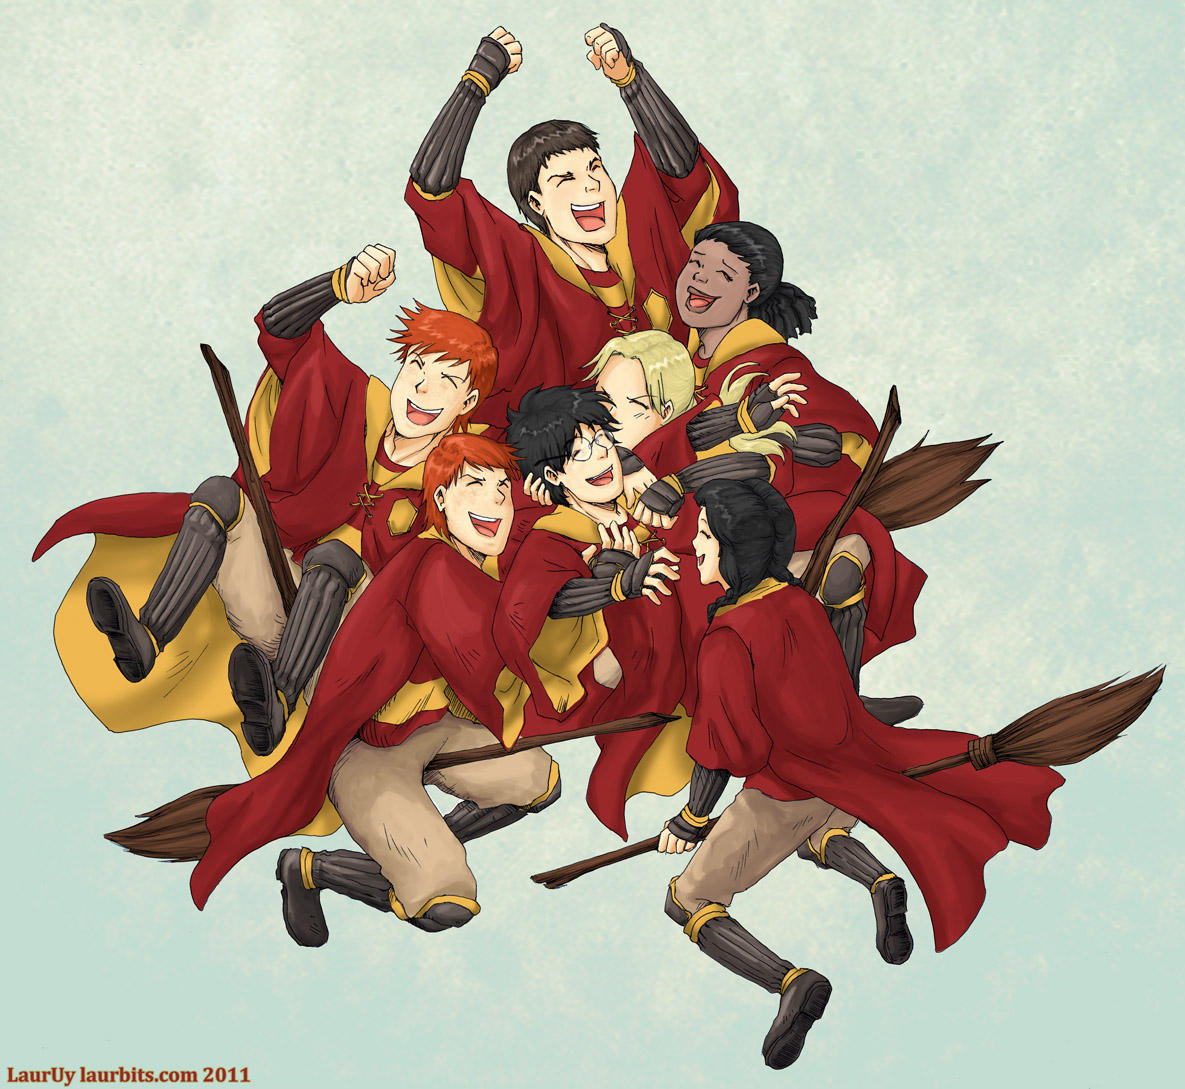 Gryffindor Quidditch Victory by laurbits